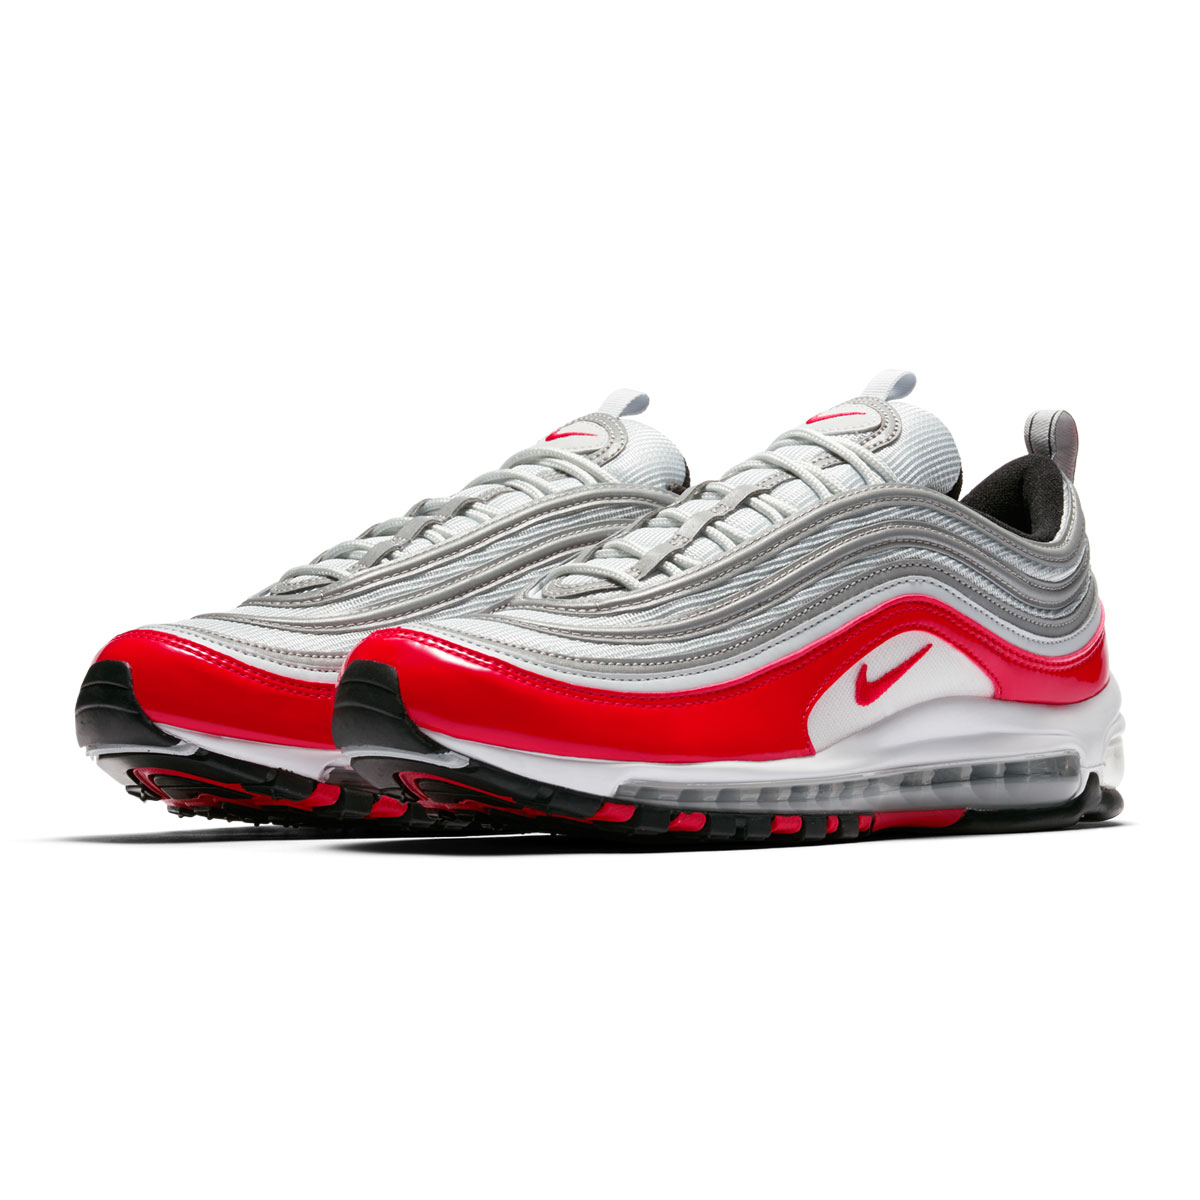 NIKE AIR MAX 97(ナイキ エア マックス 97)(PURE PLATINUM/UNIVERSITY RED-BLACK-WHITE)18SU-I